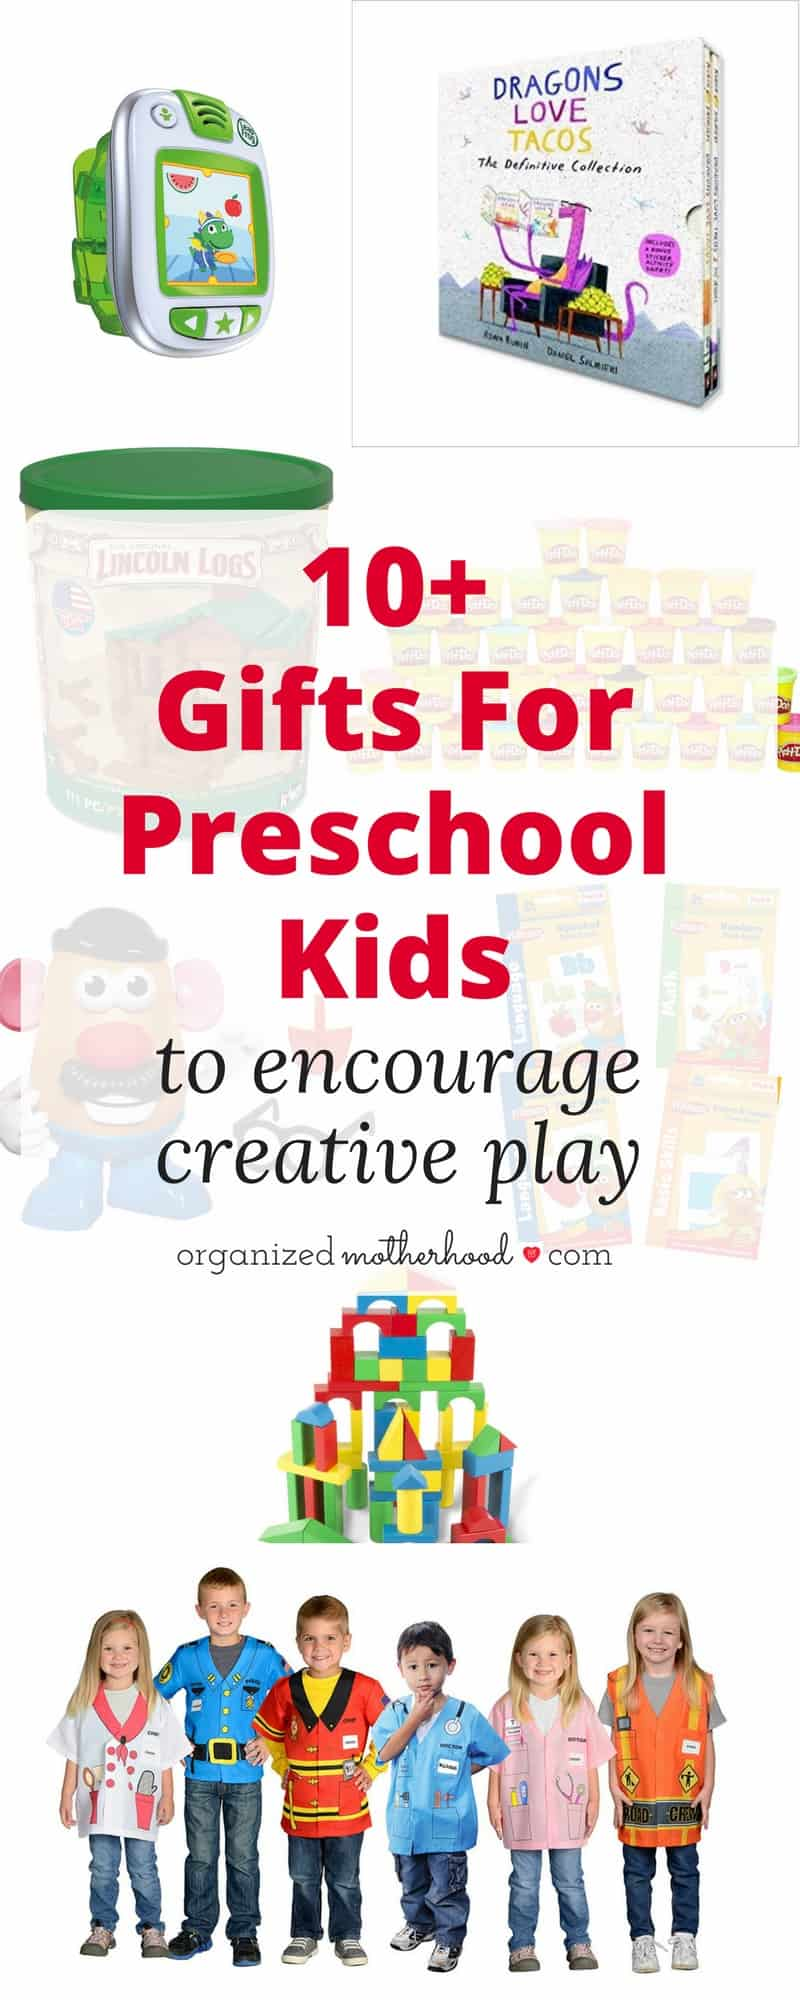 Looking for the perfect gift for a preschooler? These toys encourage creativity and learning in preschool kids. Perfect for Christmas presents!